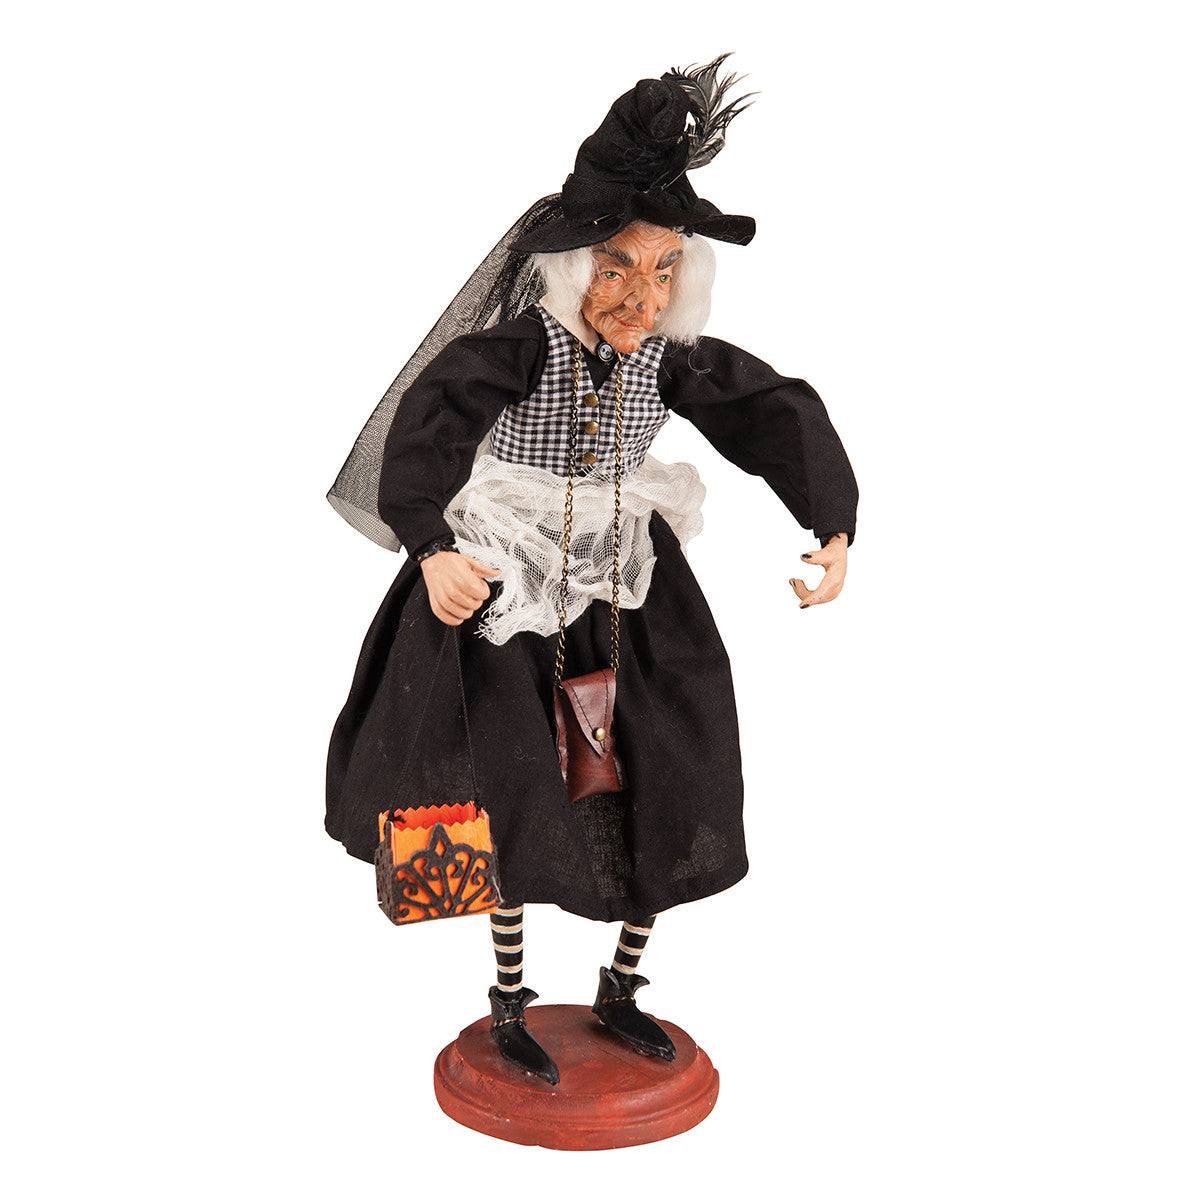 Joe Spencer Alfreda Witch on Stand